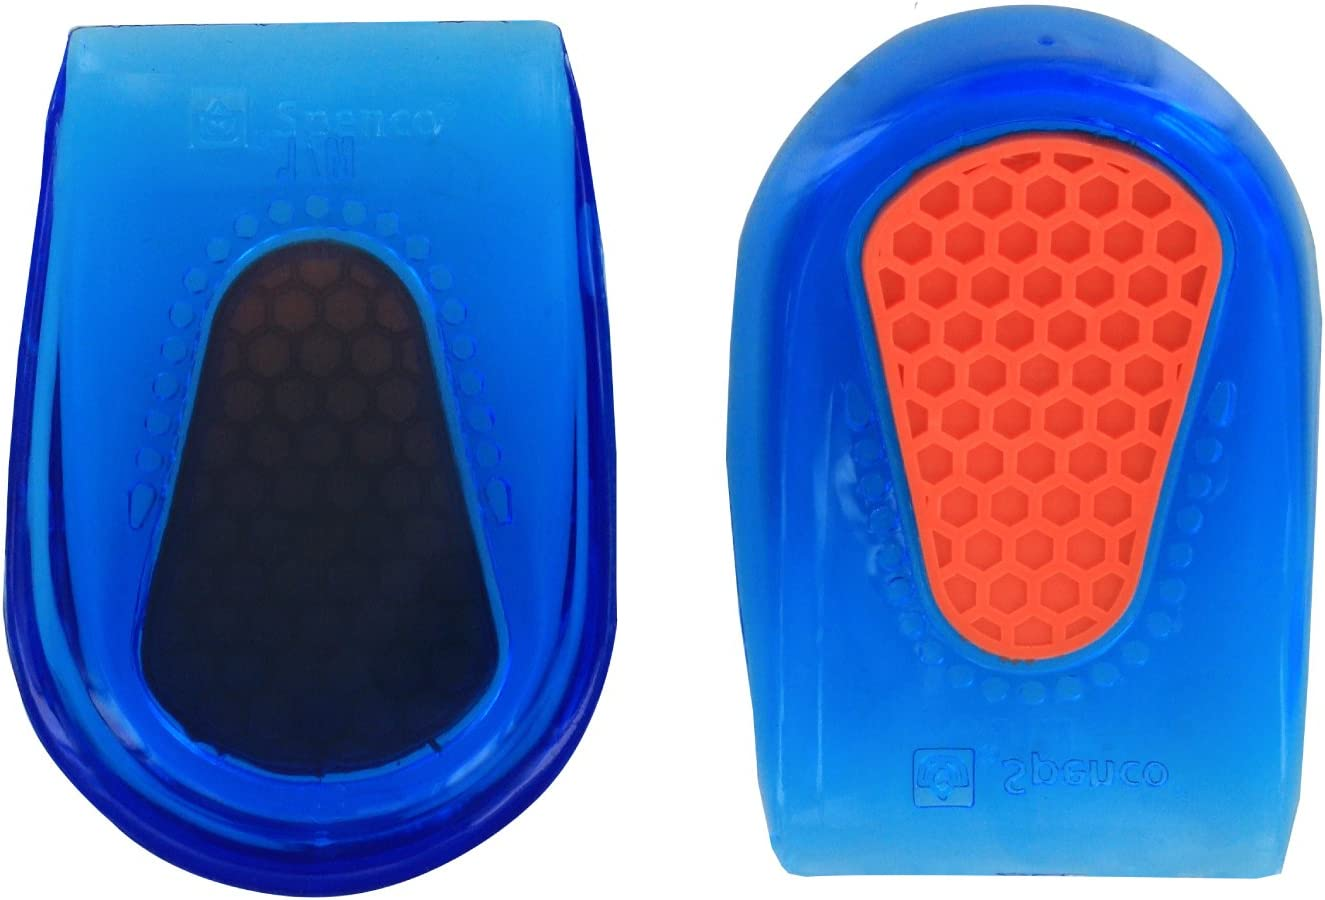 Spenco Gel Heel Cup Shoe Inserts for Pain Relief from Heel Spurs or Bruising, Small/Medium: Health & Personal Care